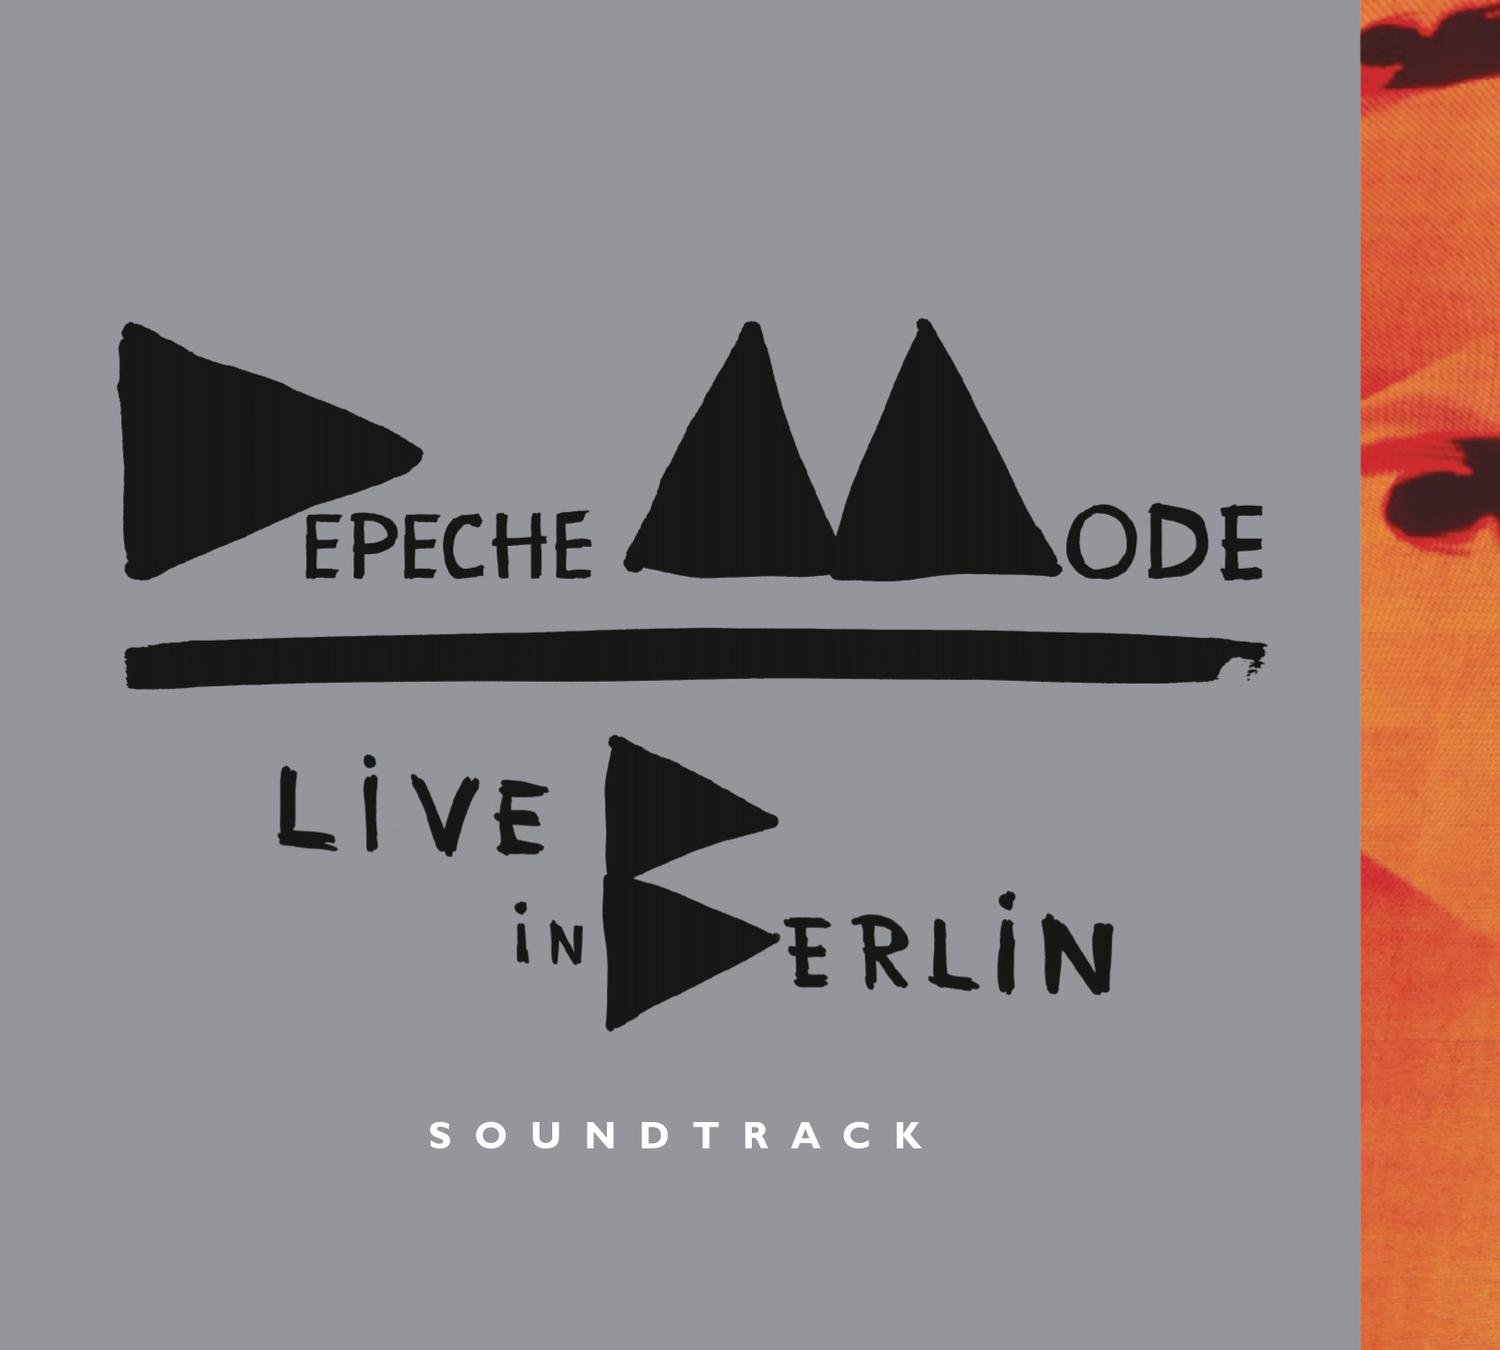 Live in Berlin Soundtrack by CD